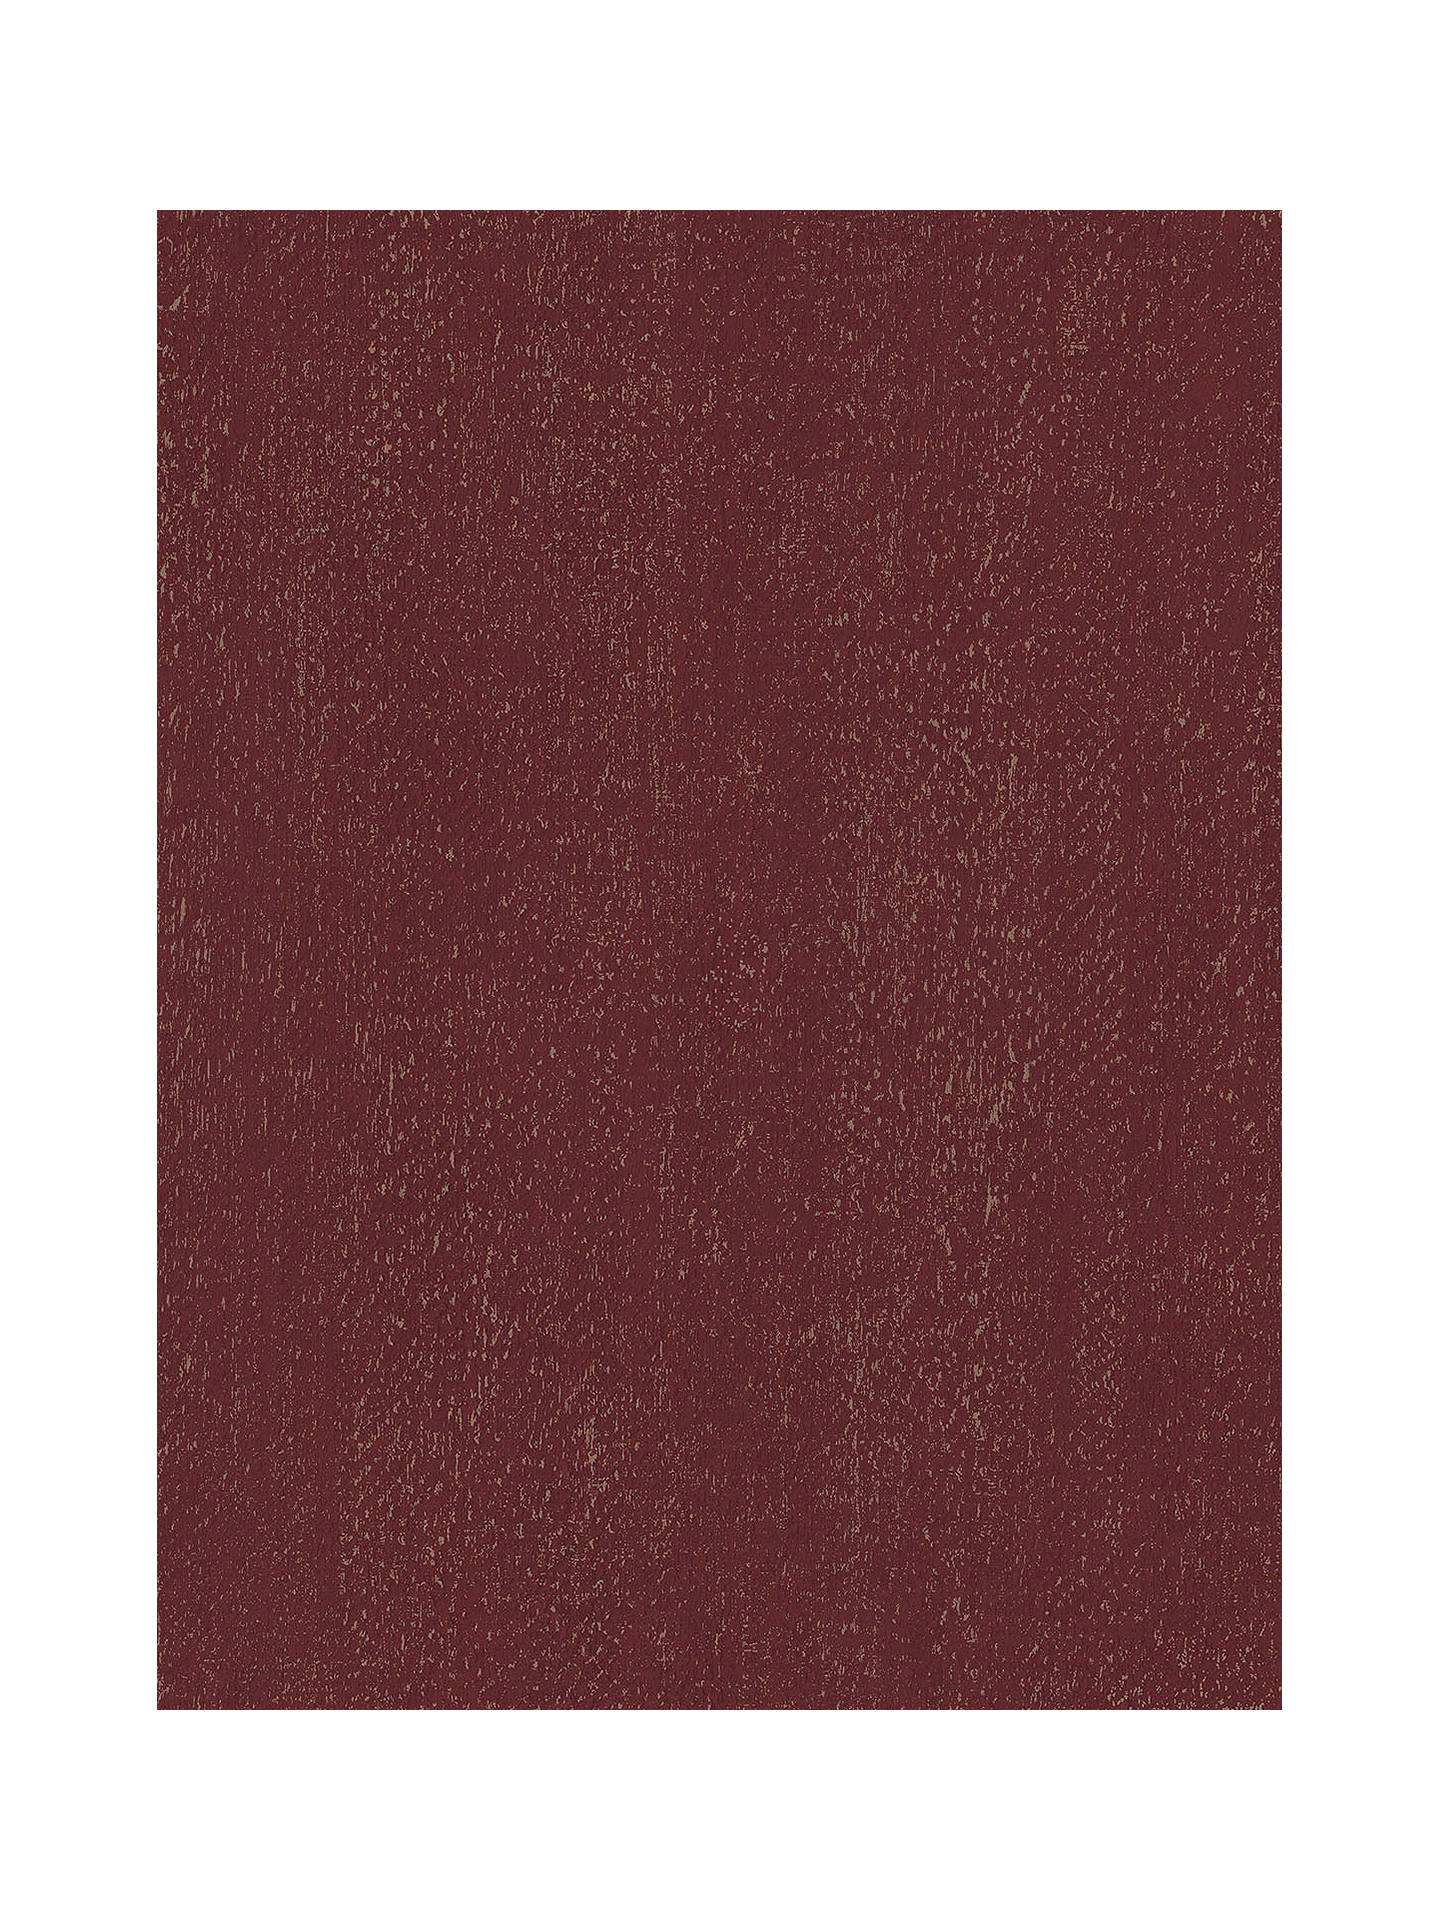 Buy Galerie Tip Texture Wallpaper, G67822 Online at johnlewis.com